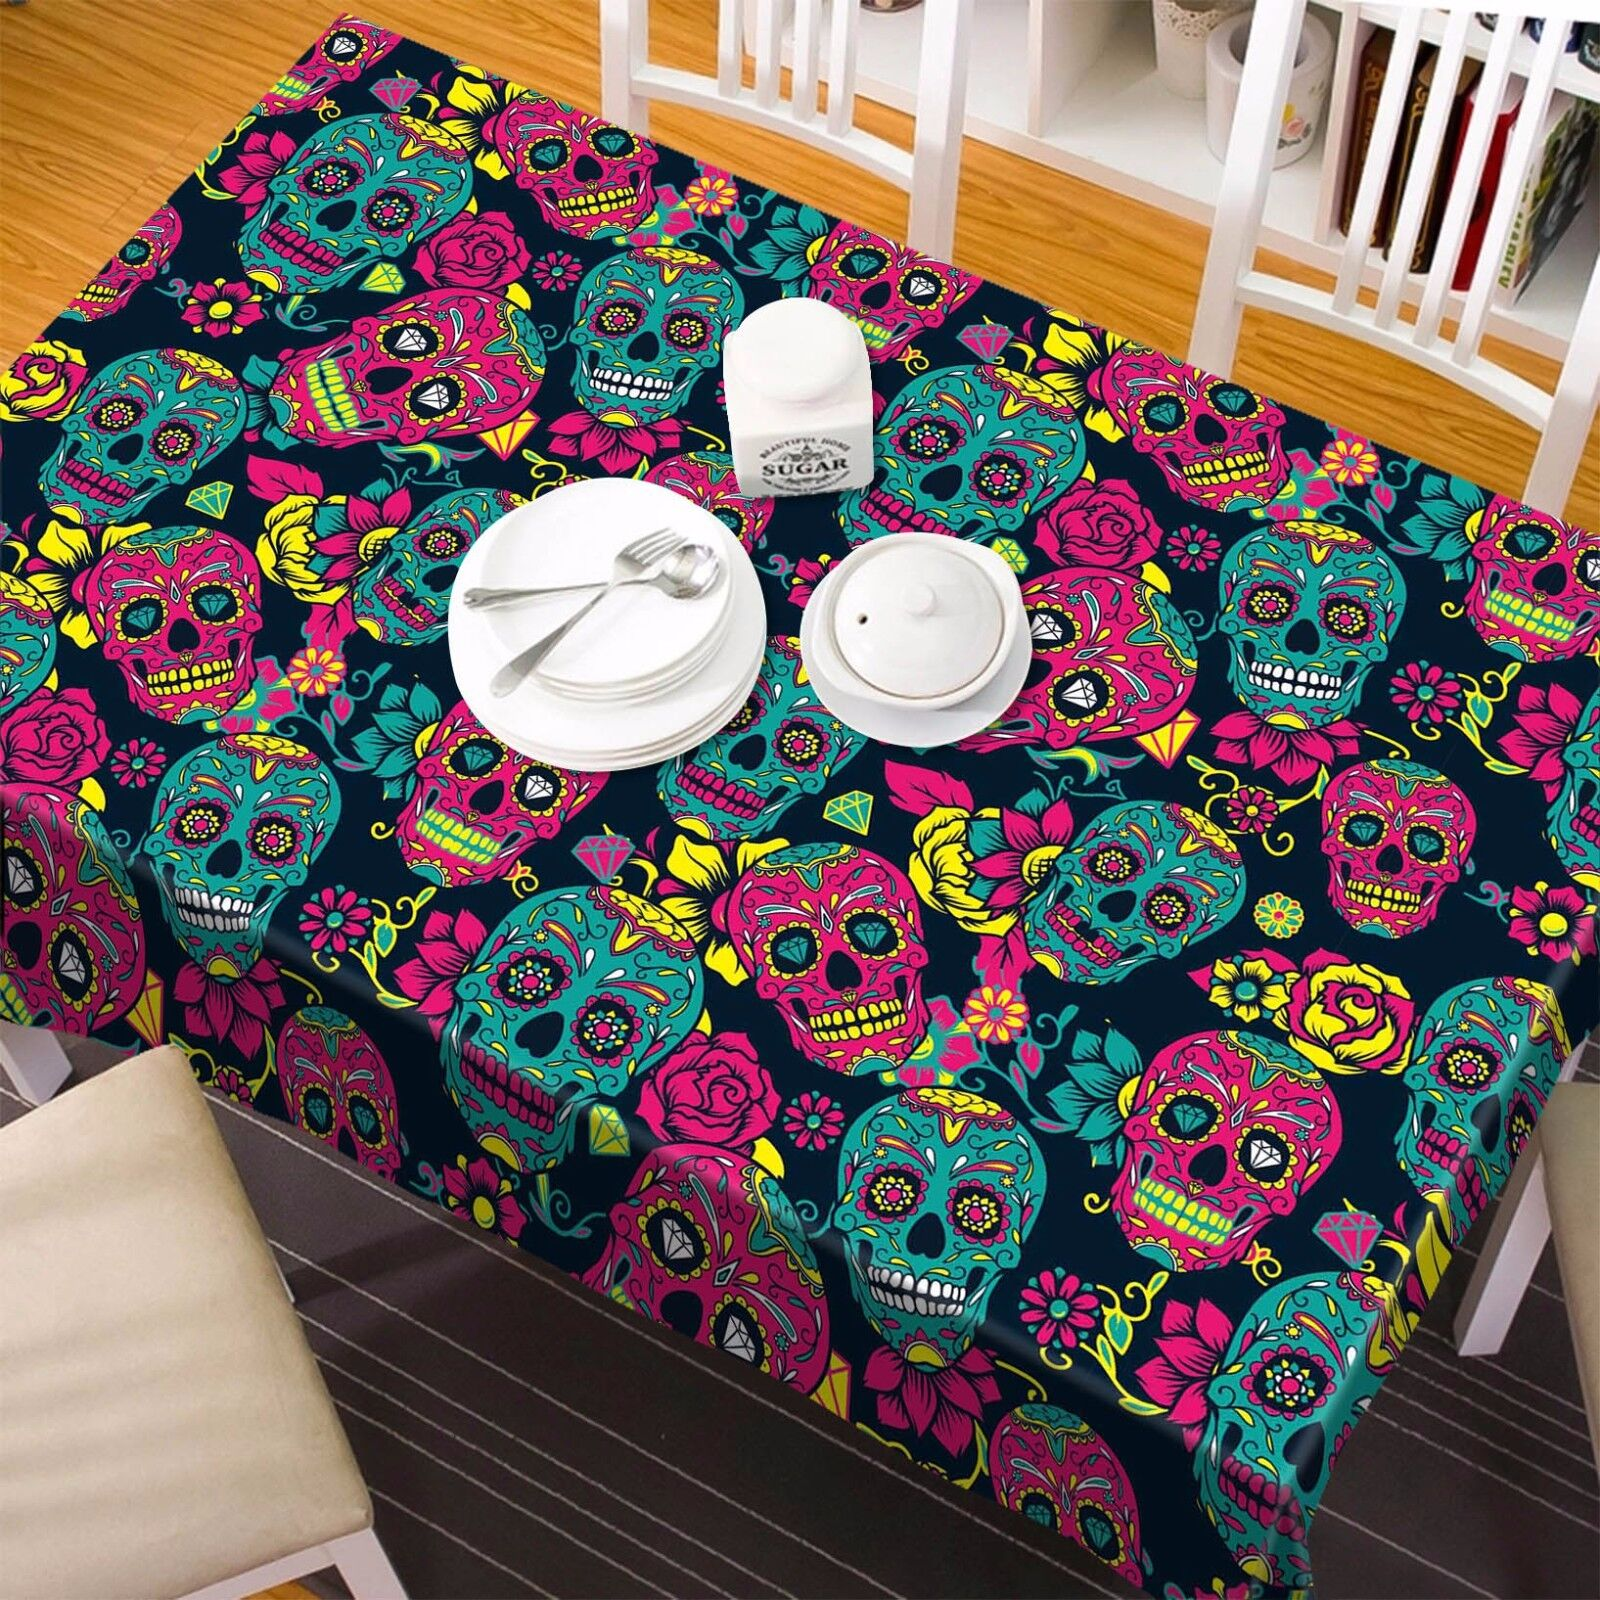 3D Skeleton 5 Tablecloth Table Cover Cloth Birthday Party AJ WALLPAPER UK Lemon